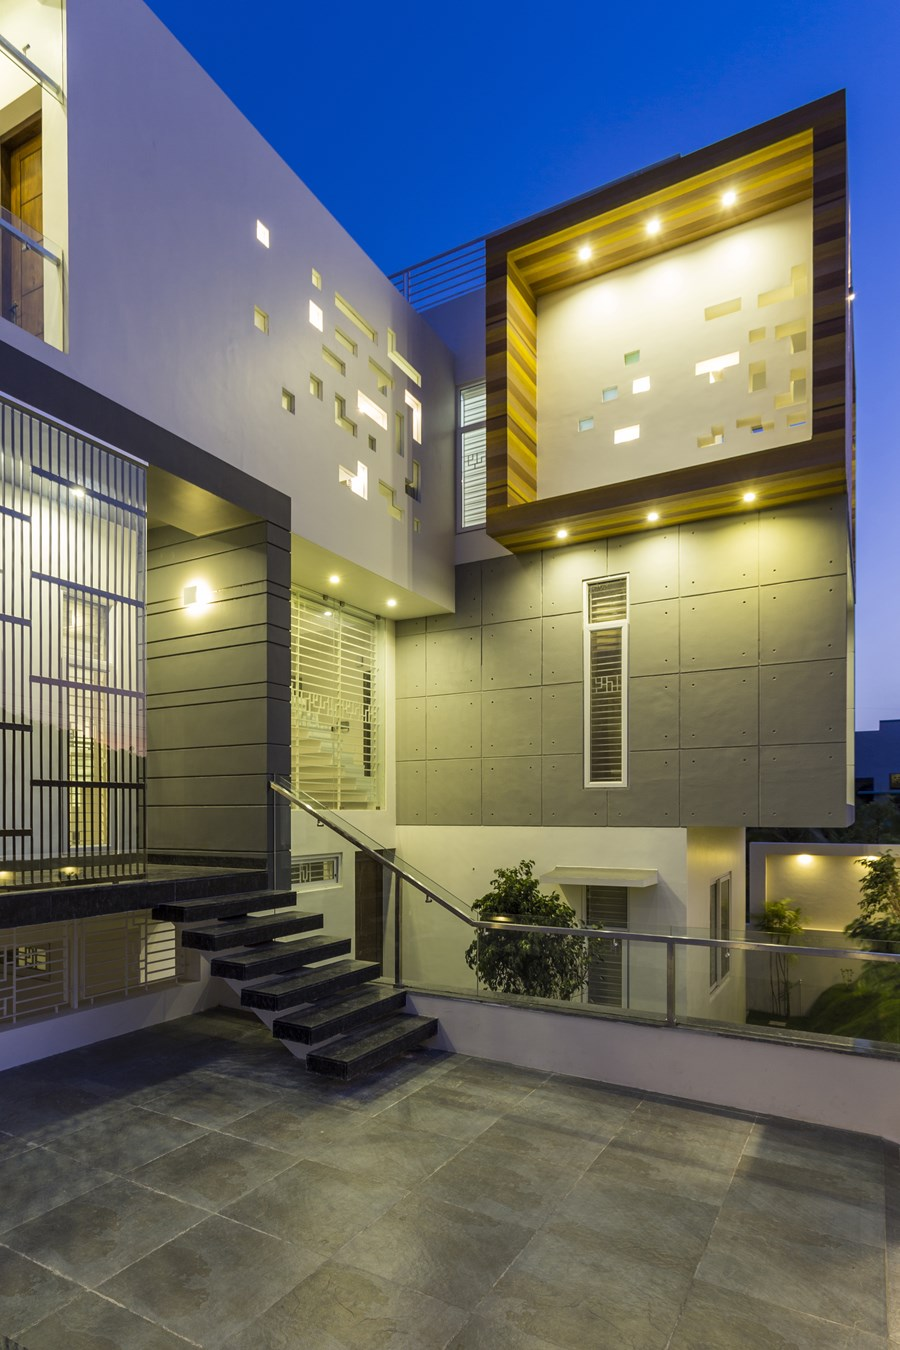 Jose Anand house by Designpro Architects 23